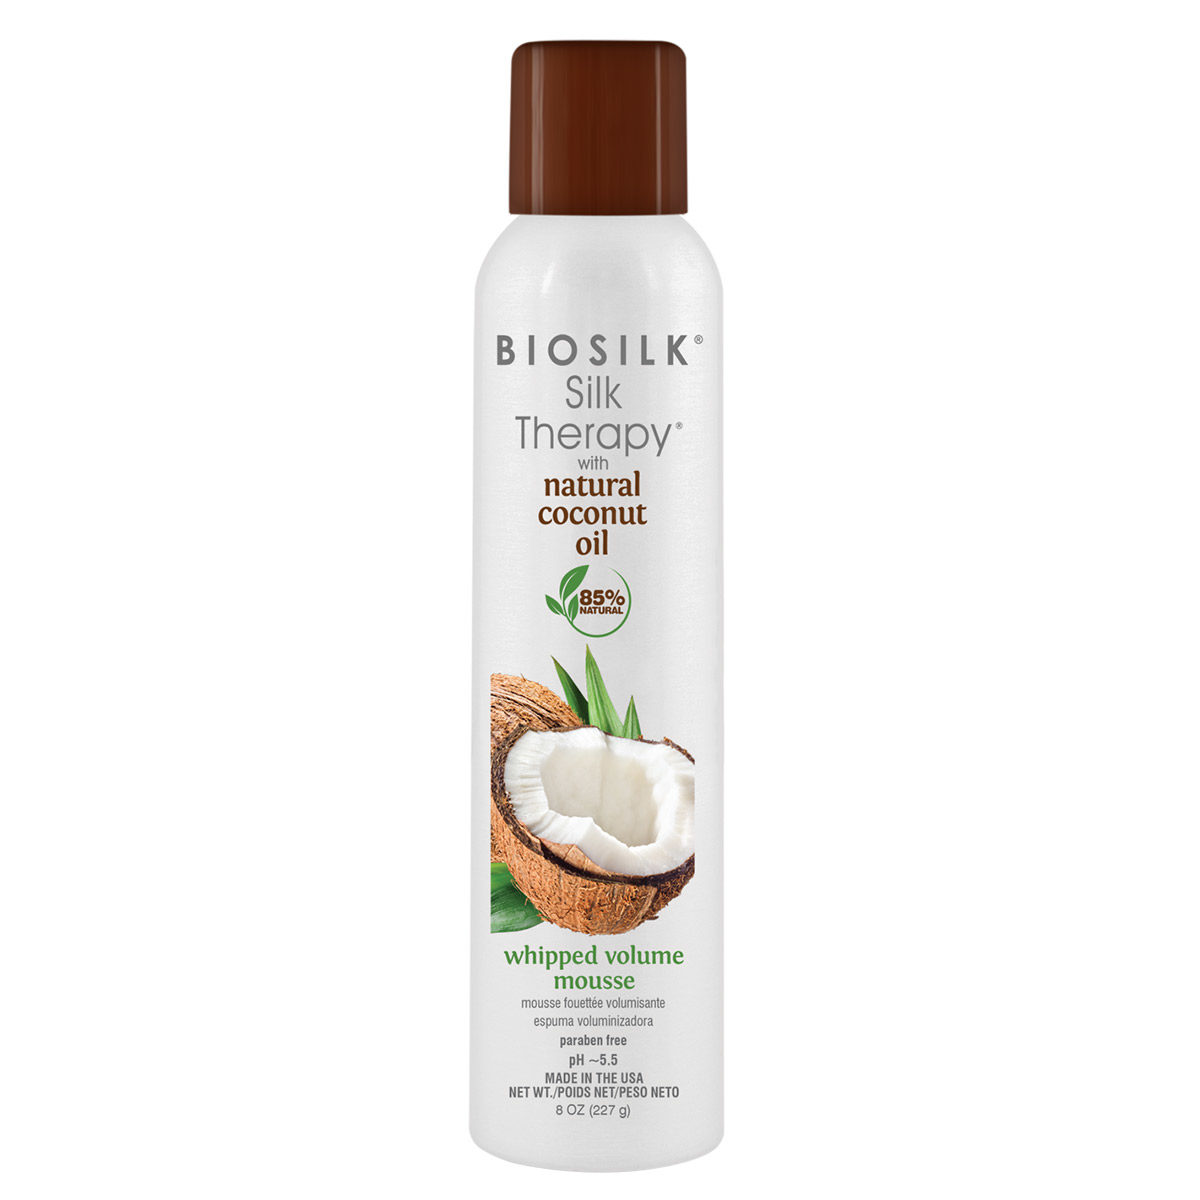 Silk Therapy with Natural Coconut Oil Whipped Volume Mousse